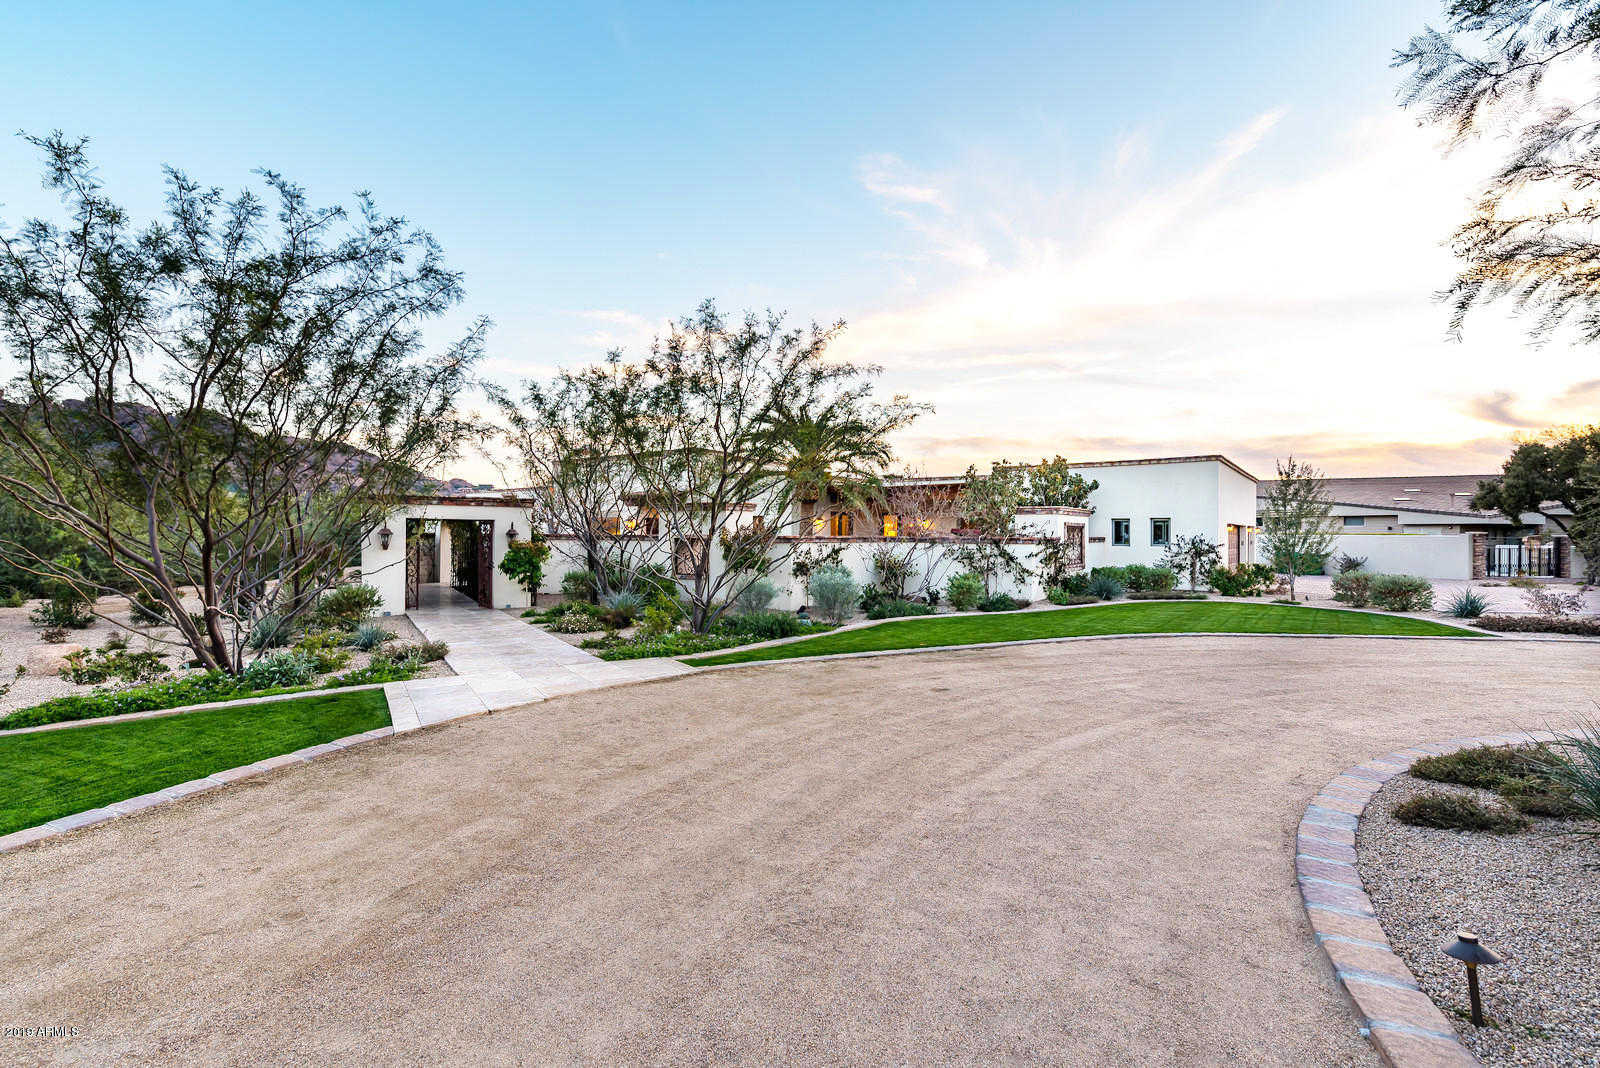 $2,475,000 - 4Br/5Ba - Home for Sale in Camelhead Estates, Paradise Valley